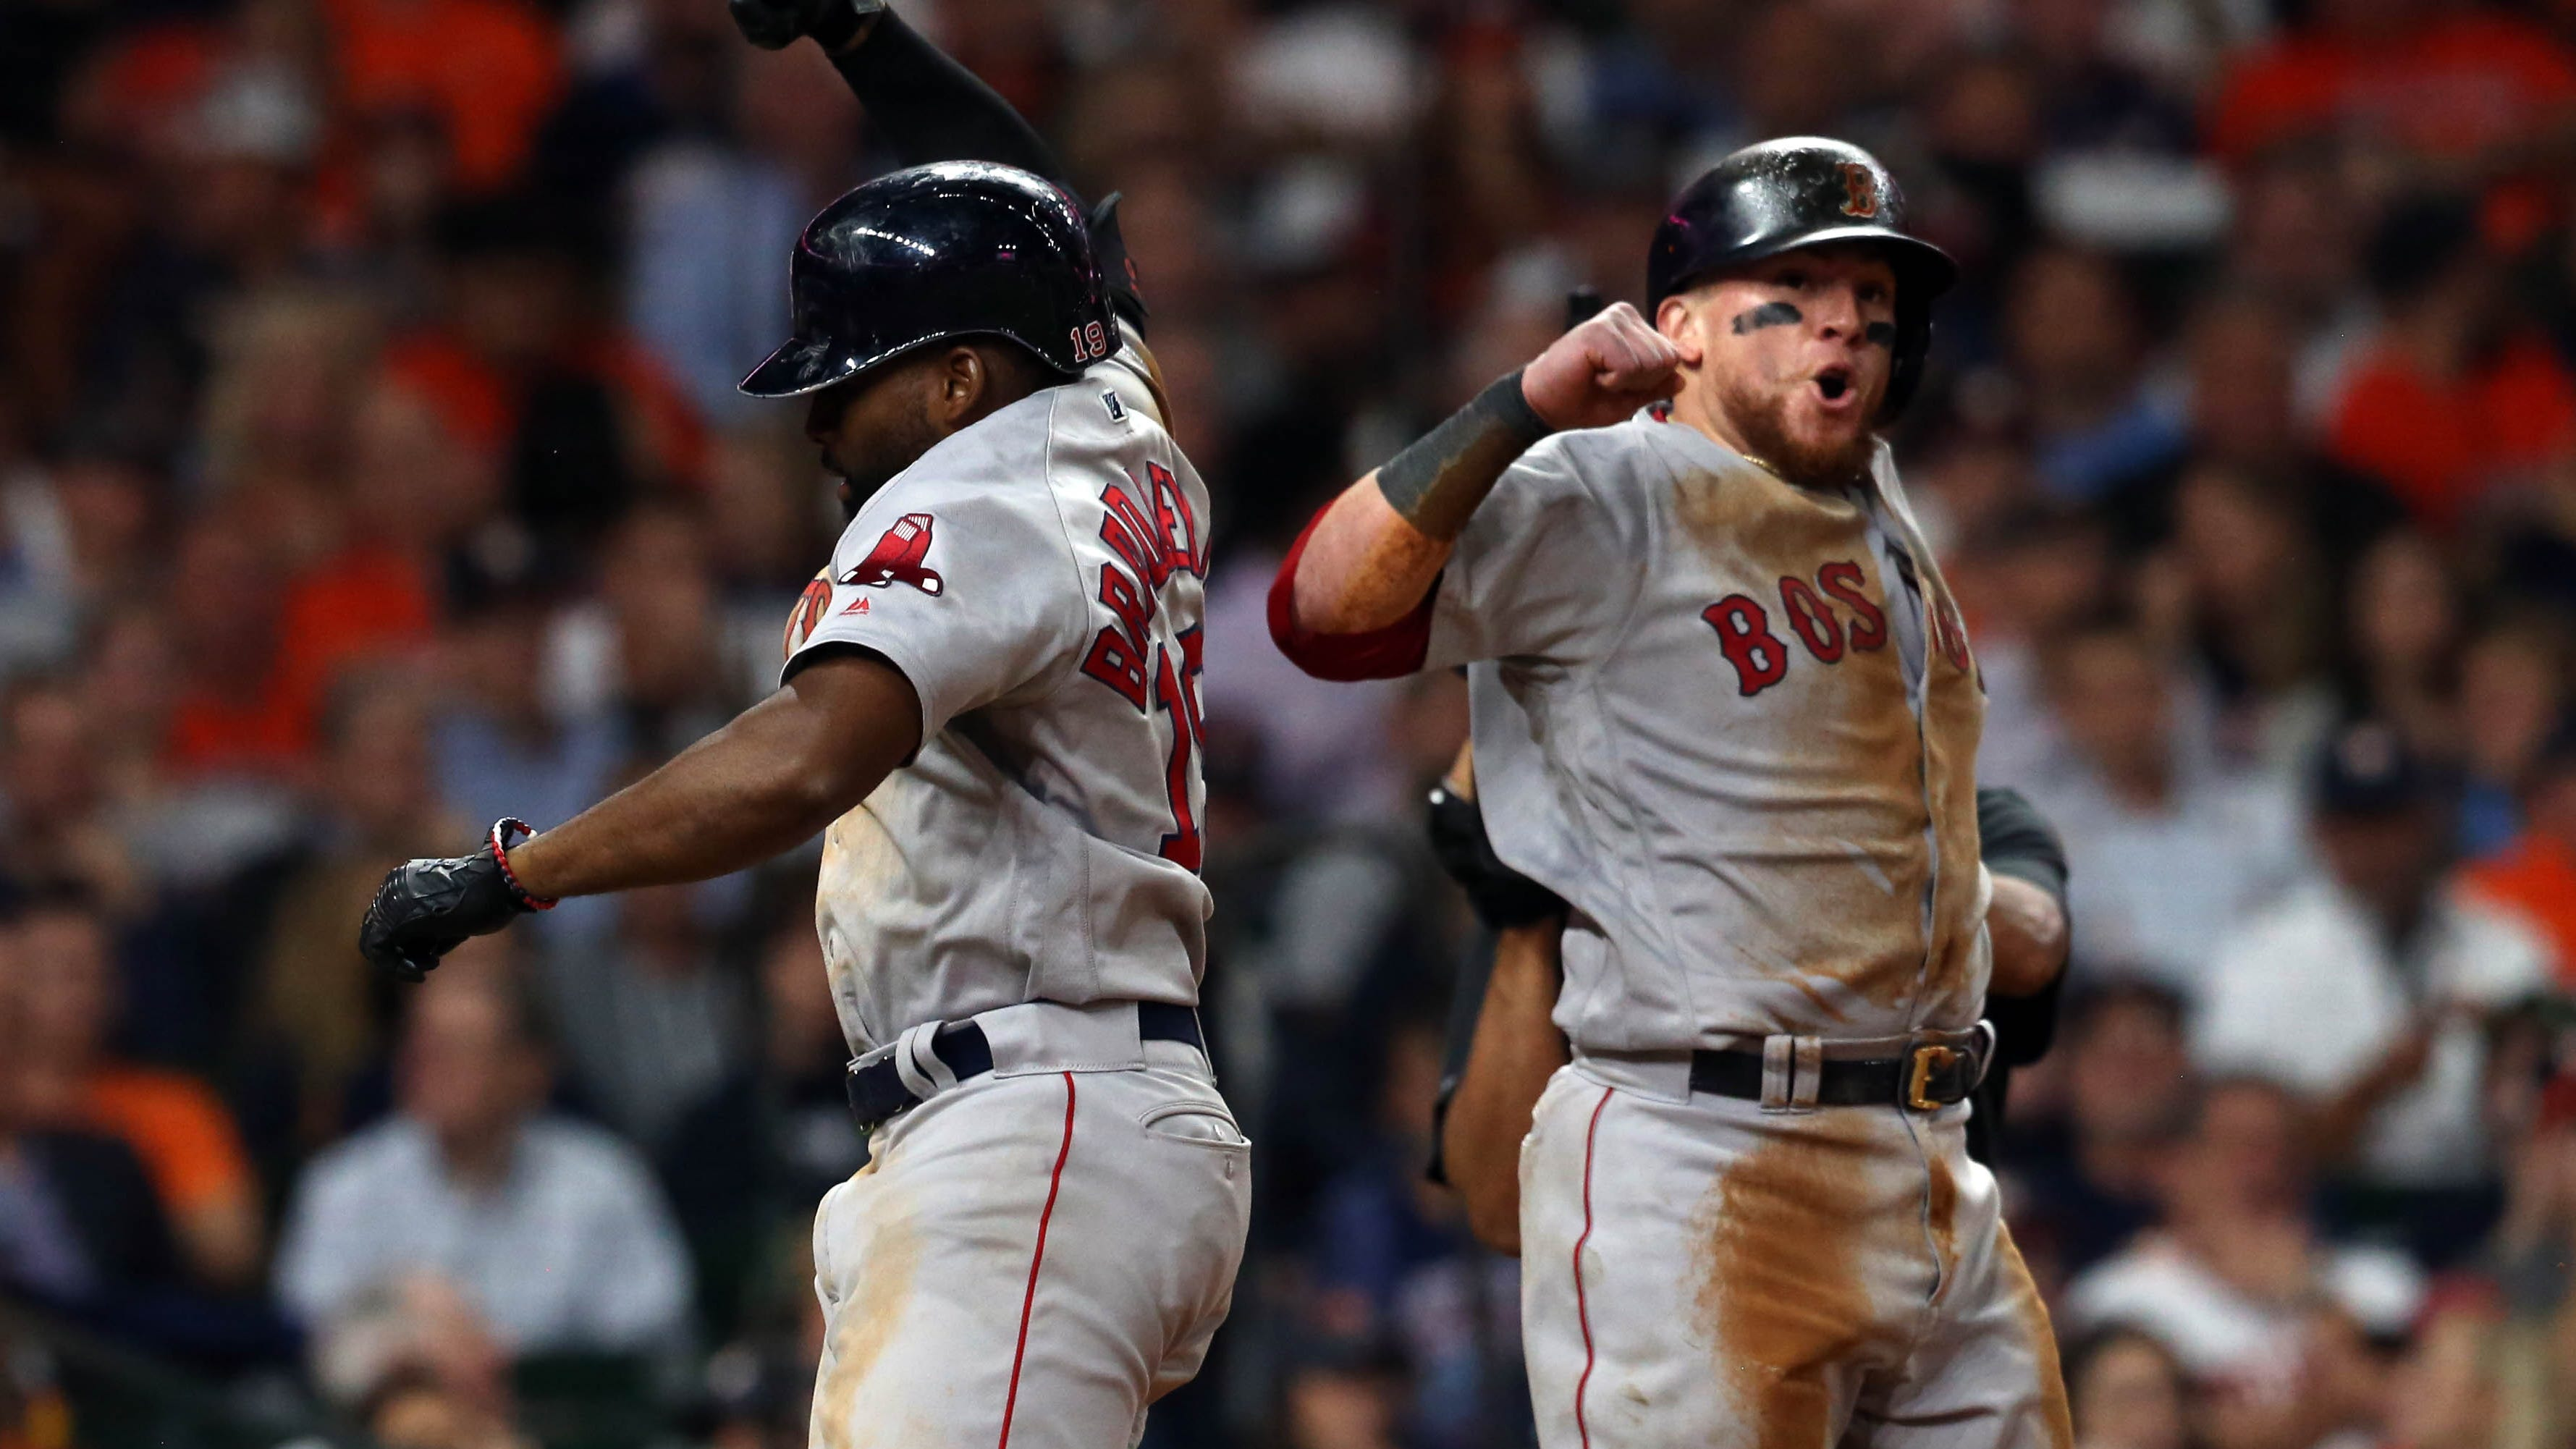 MLB playoffs 2018: Full schedule and results